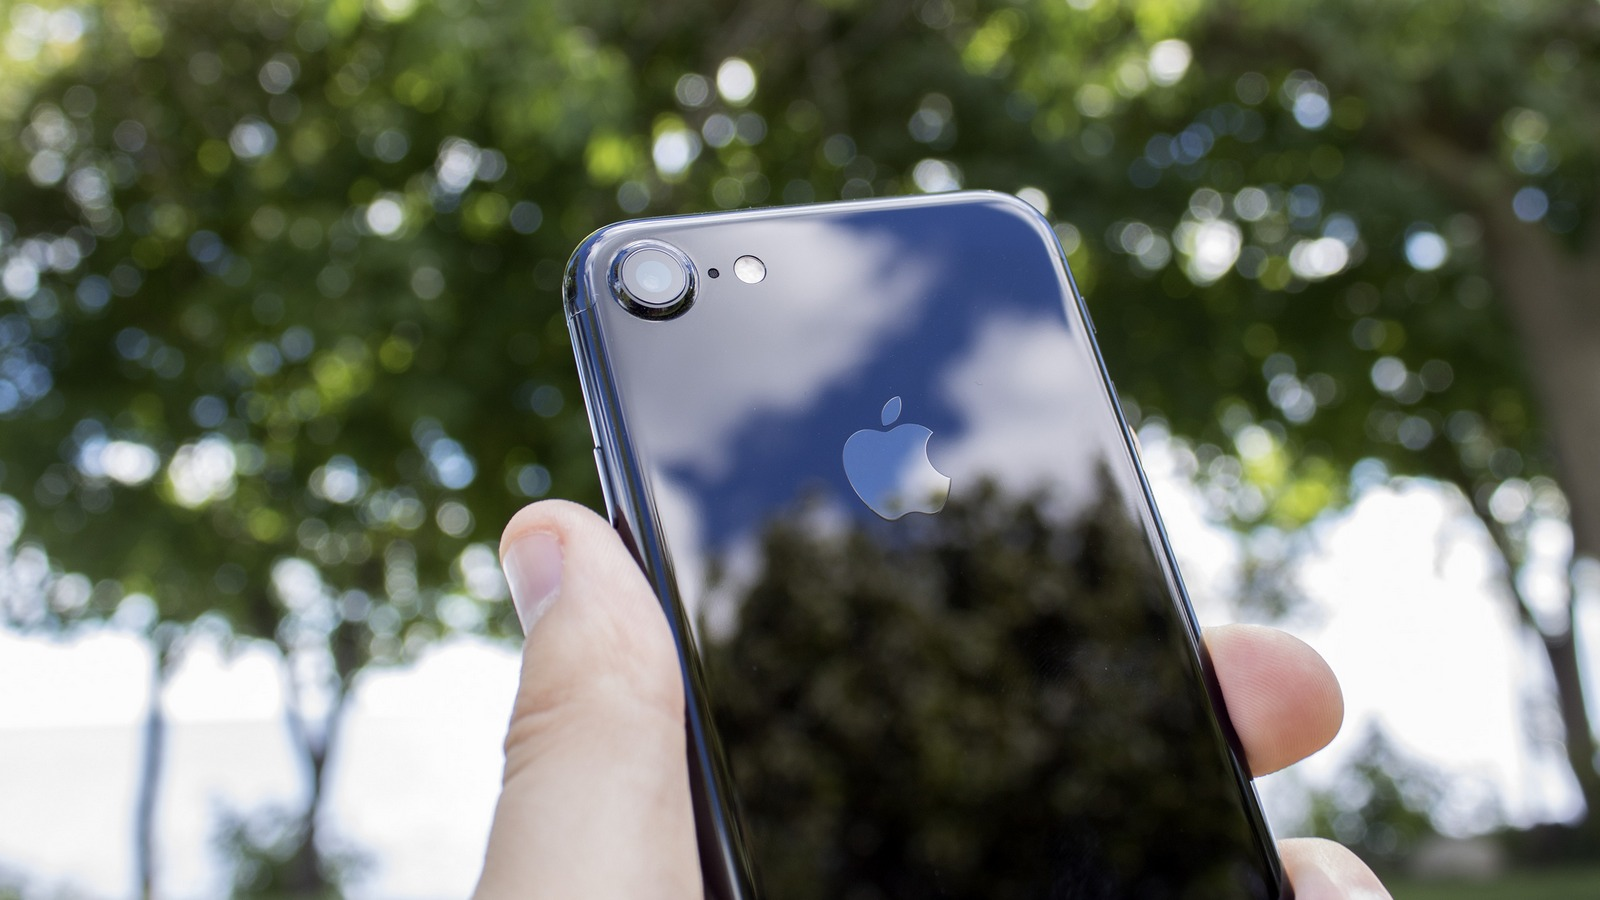 Experts have calculated the cost of the components of the iPhone 7